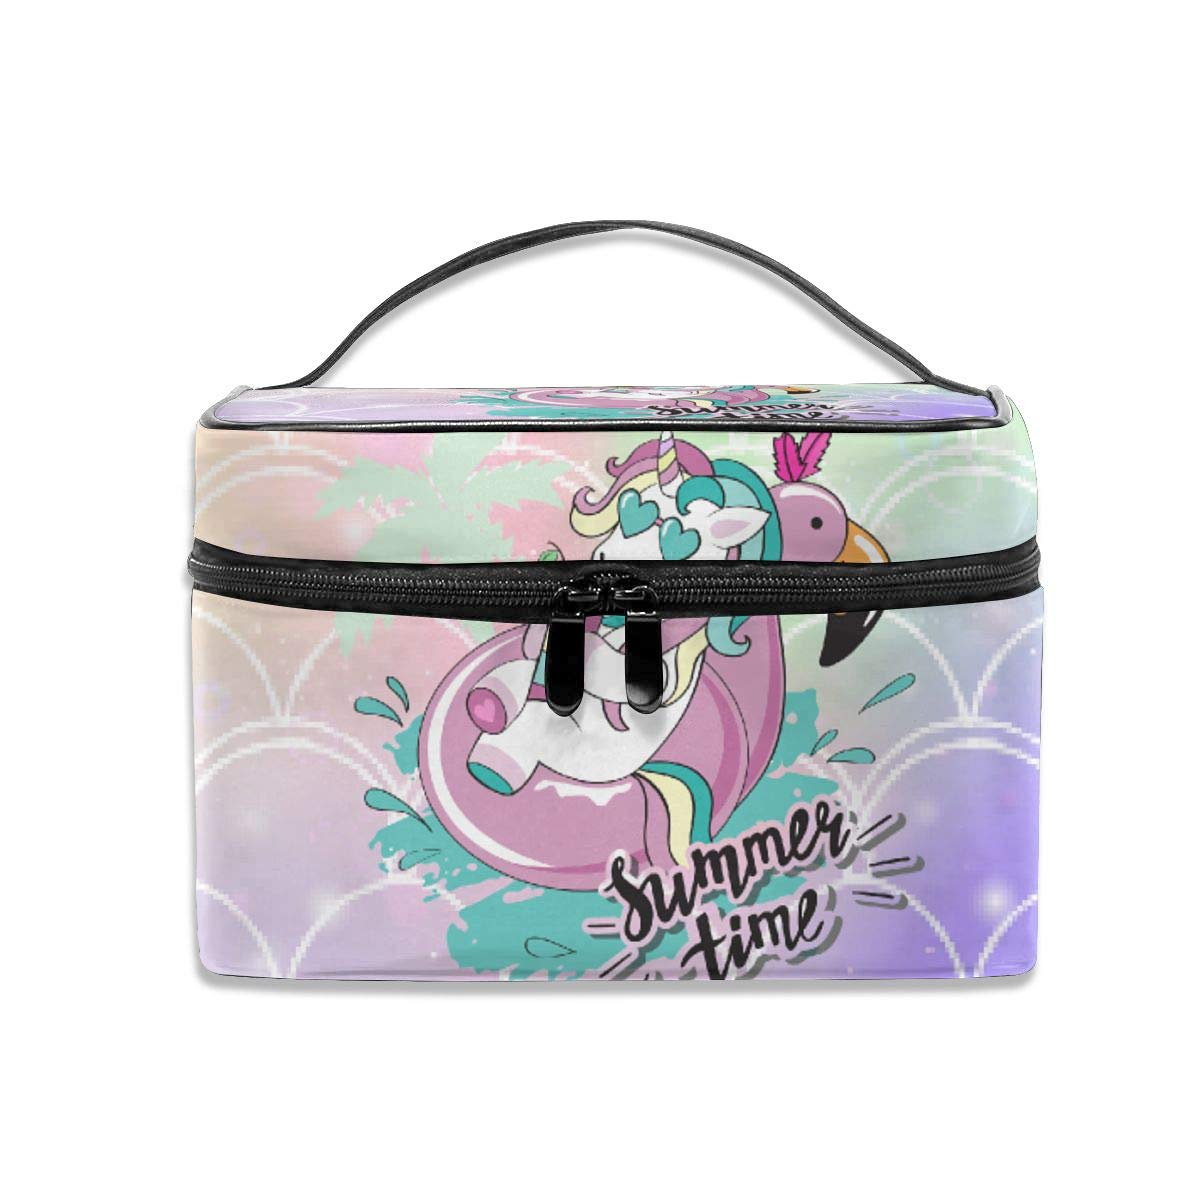 Oakland Mall Lucaeat Coloured Scales Max 86% OFF Makeup Train Case Carrying Zip Portable